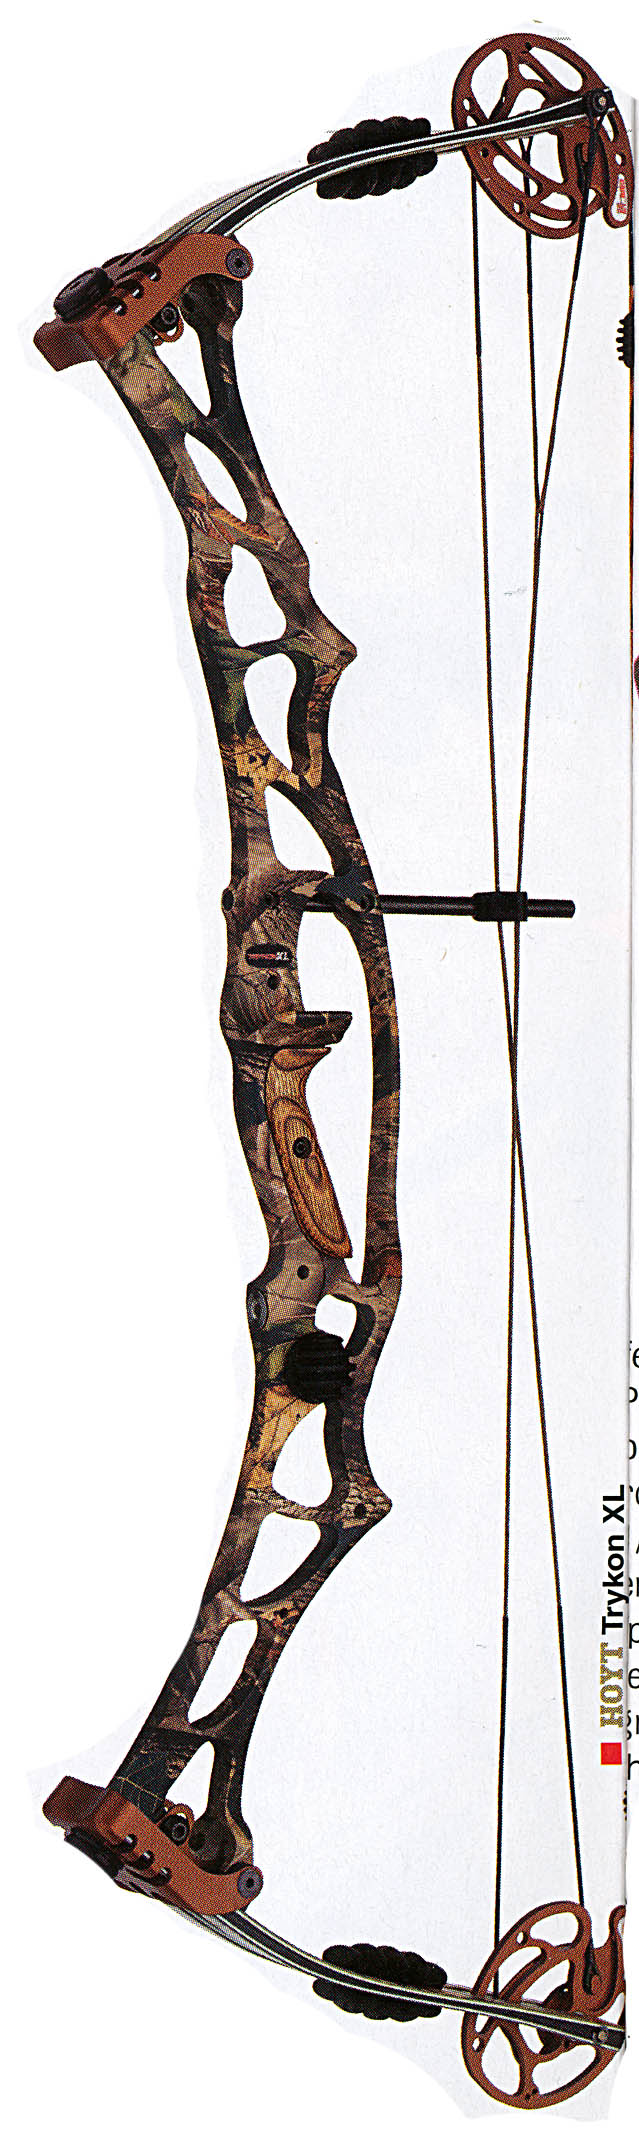 2006 Hoyt Bows http://www.archeryhistory.com/compounds/2000.php